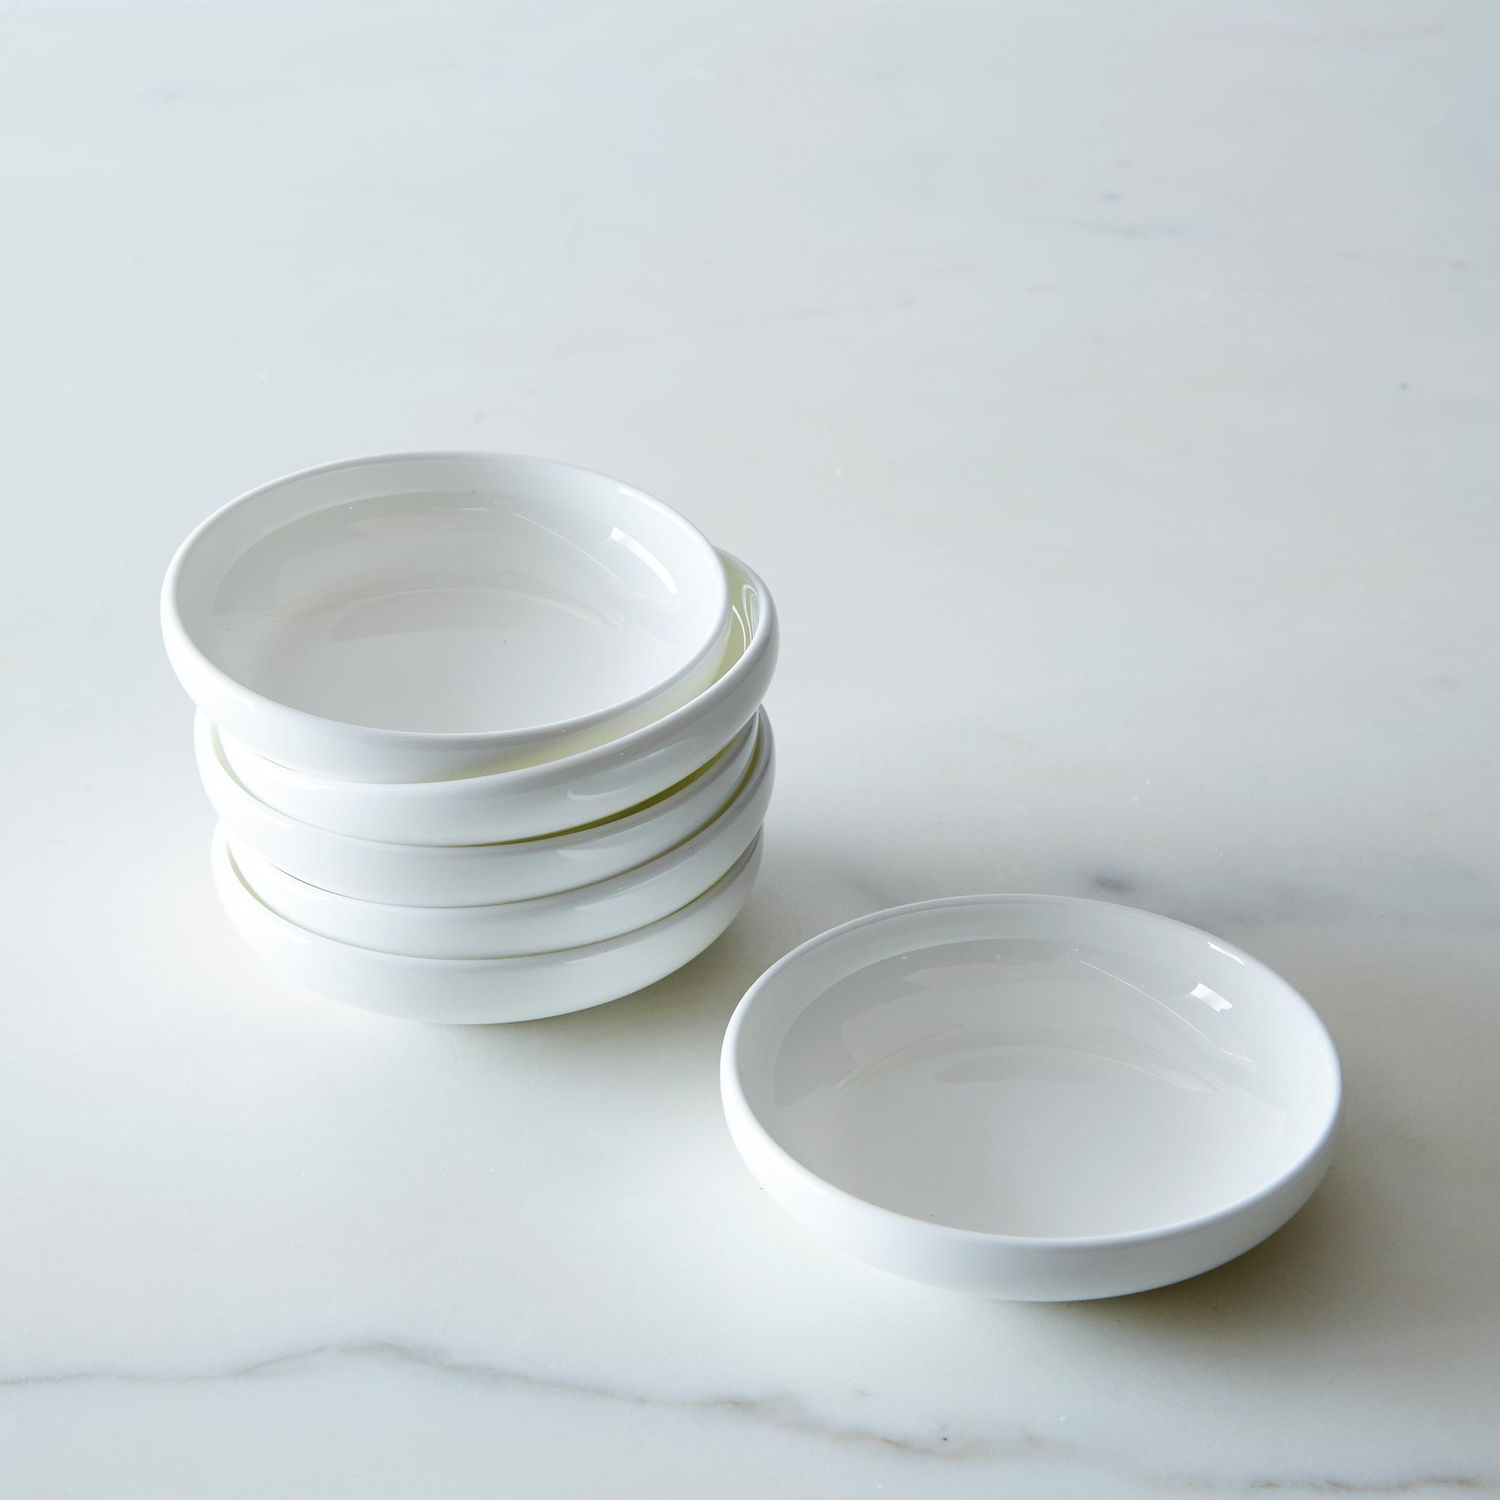 Purio White Condiment Bowls Set Of 6 On Food52